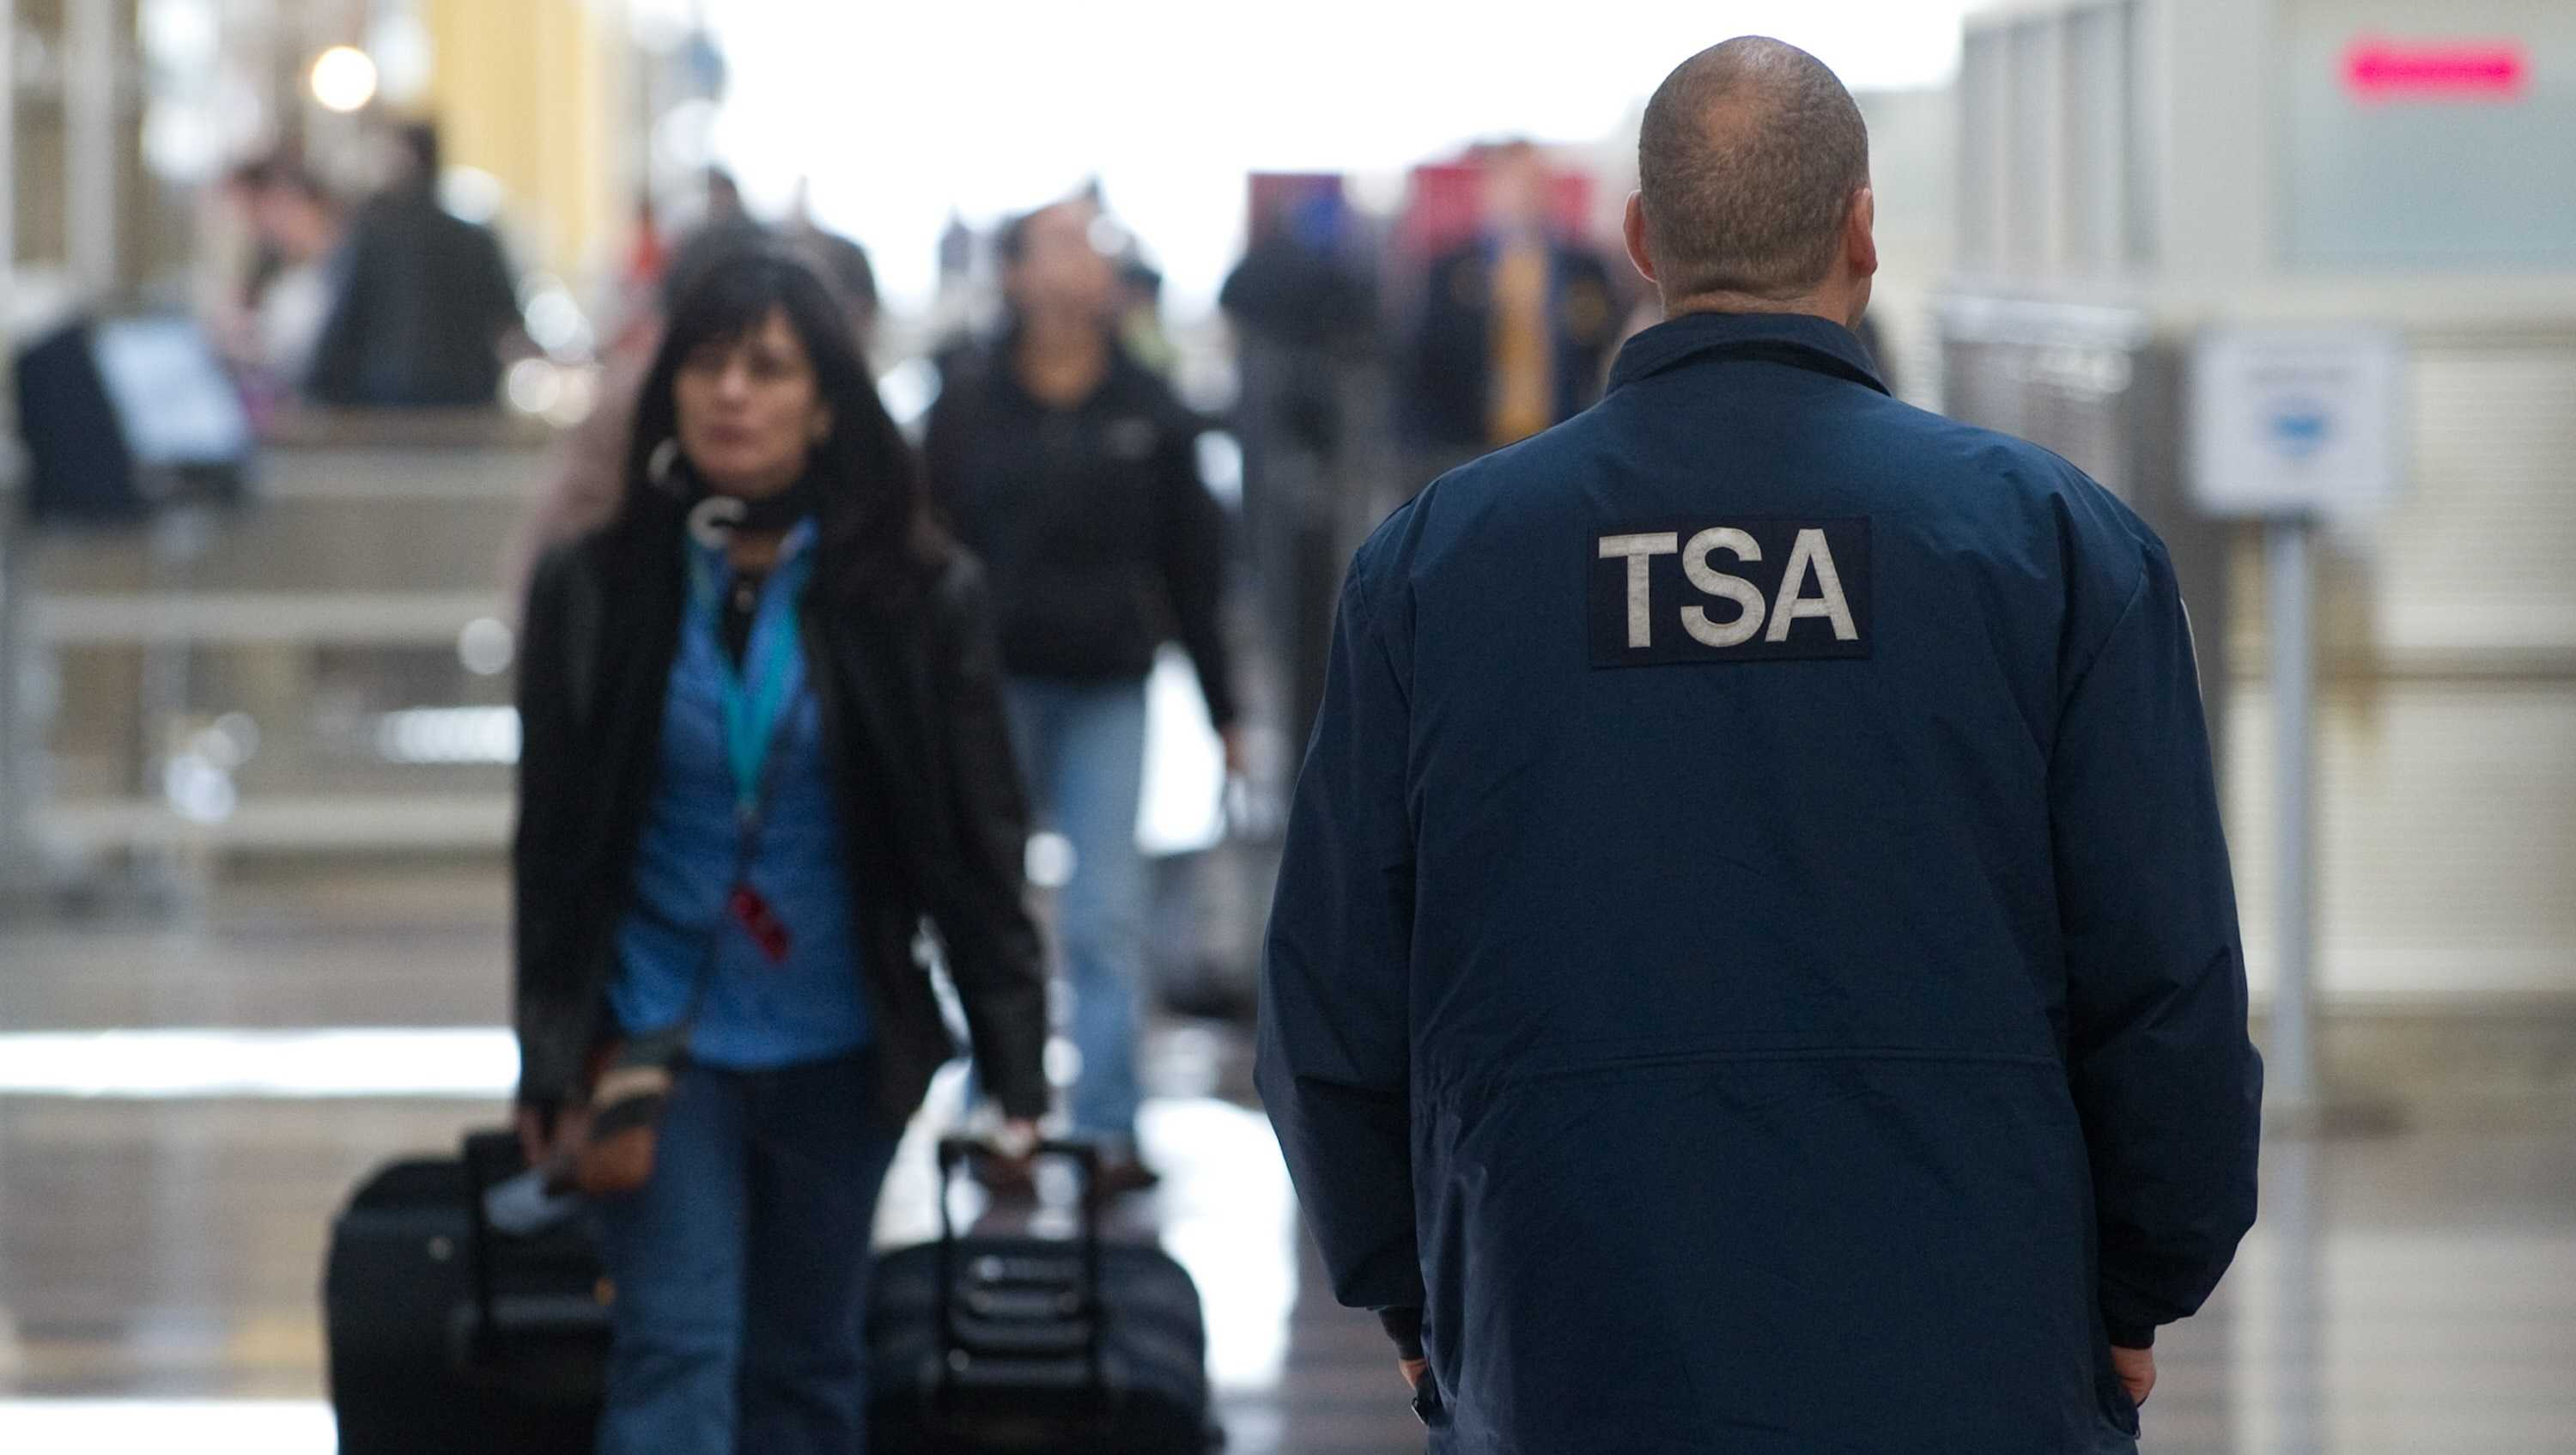 A Transportation Security Administration agent walks through the terminal at Ronald Reagan Washington National Airport in Arlington, Virginia, November 6, 2010.